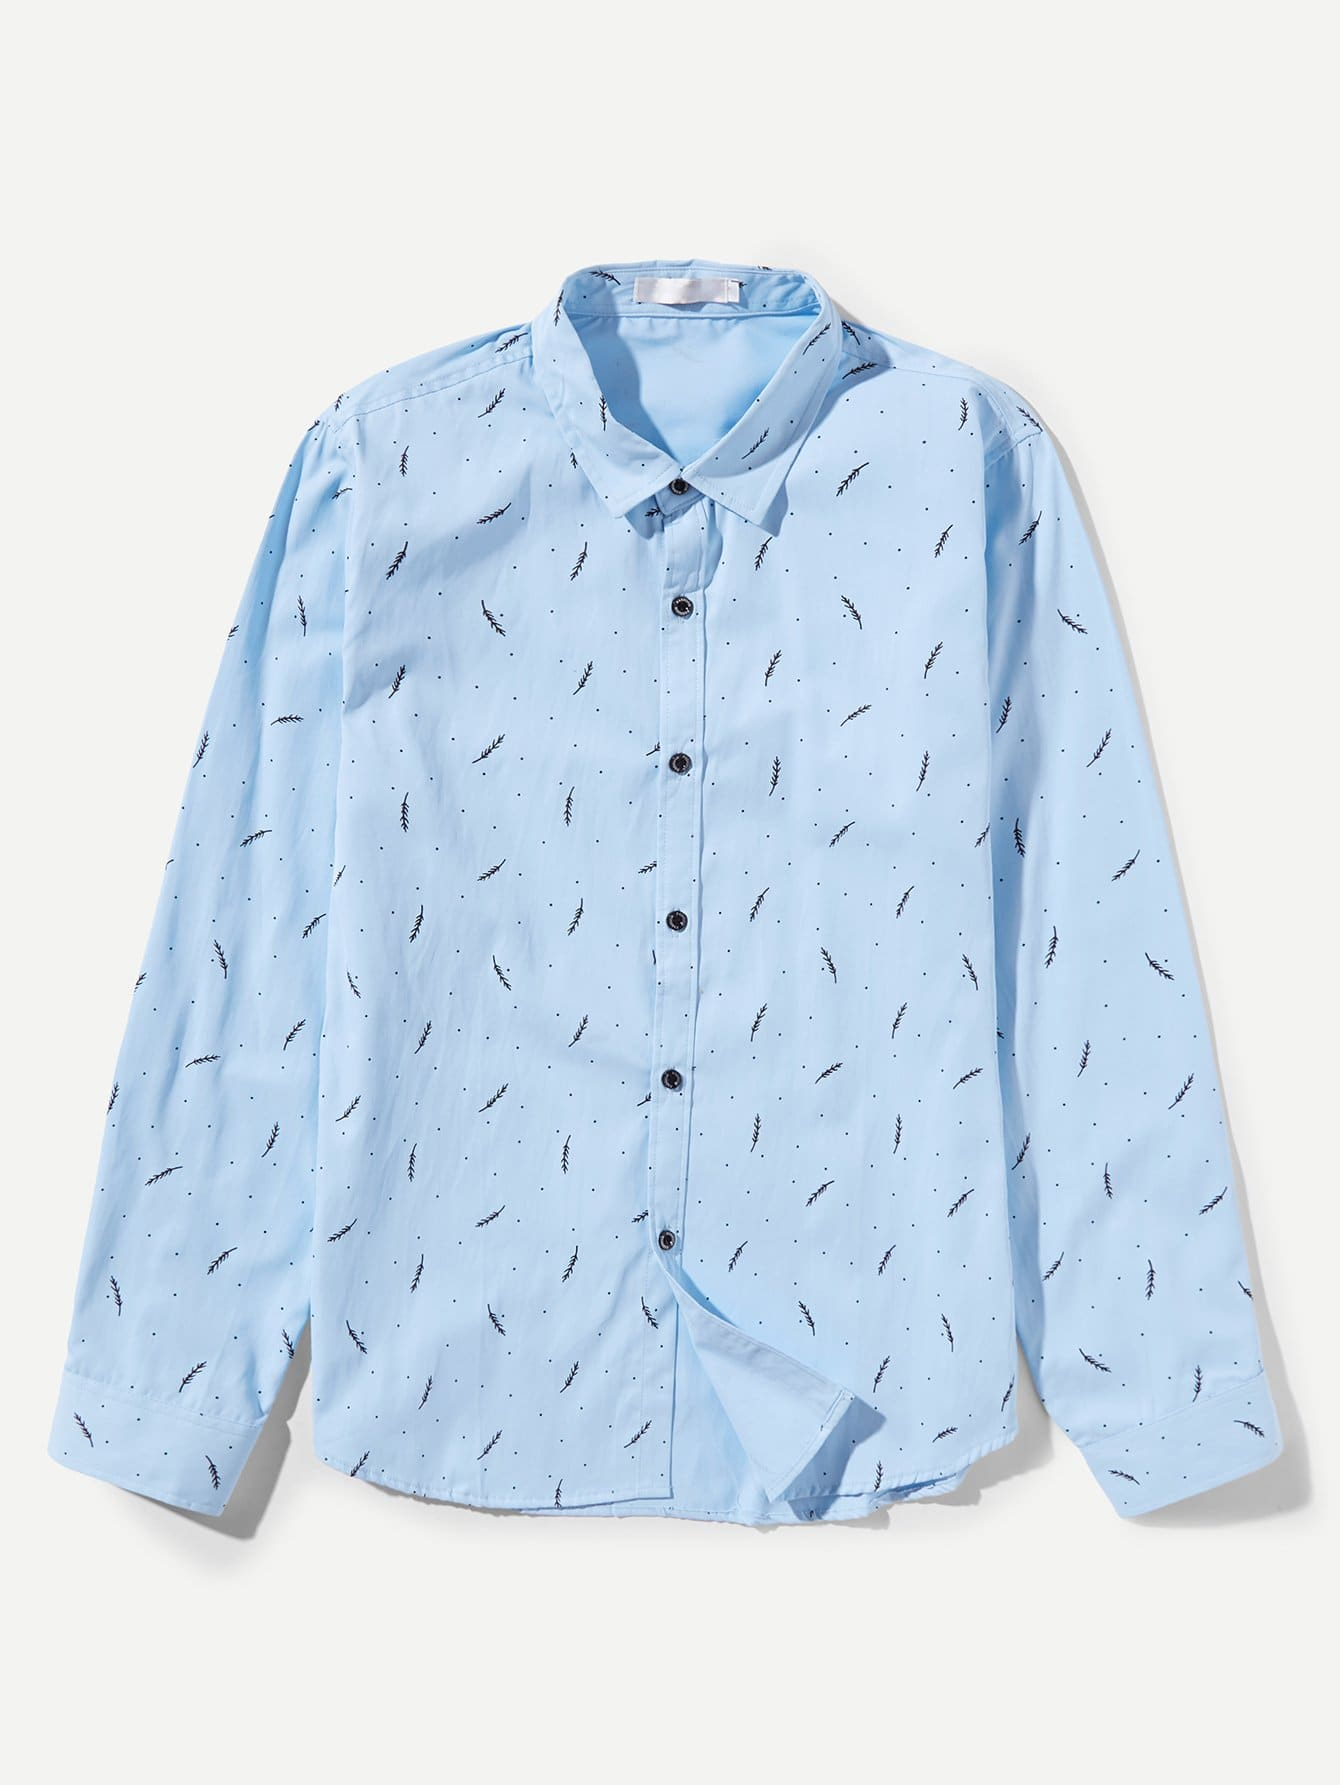 Men Feather Print Shirt li ning men s ln humble glory classical fashion leisure shoes agcn053 2